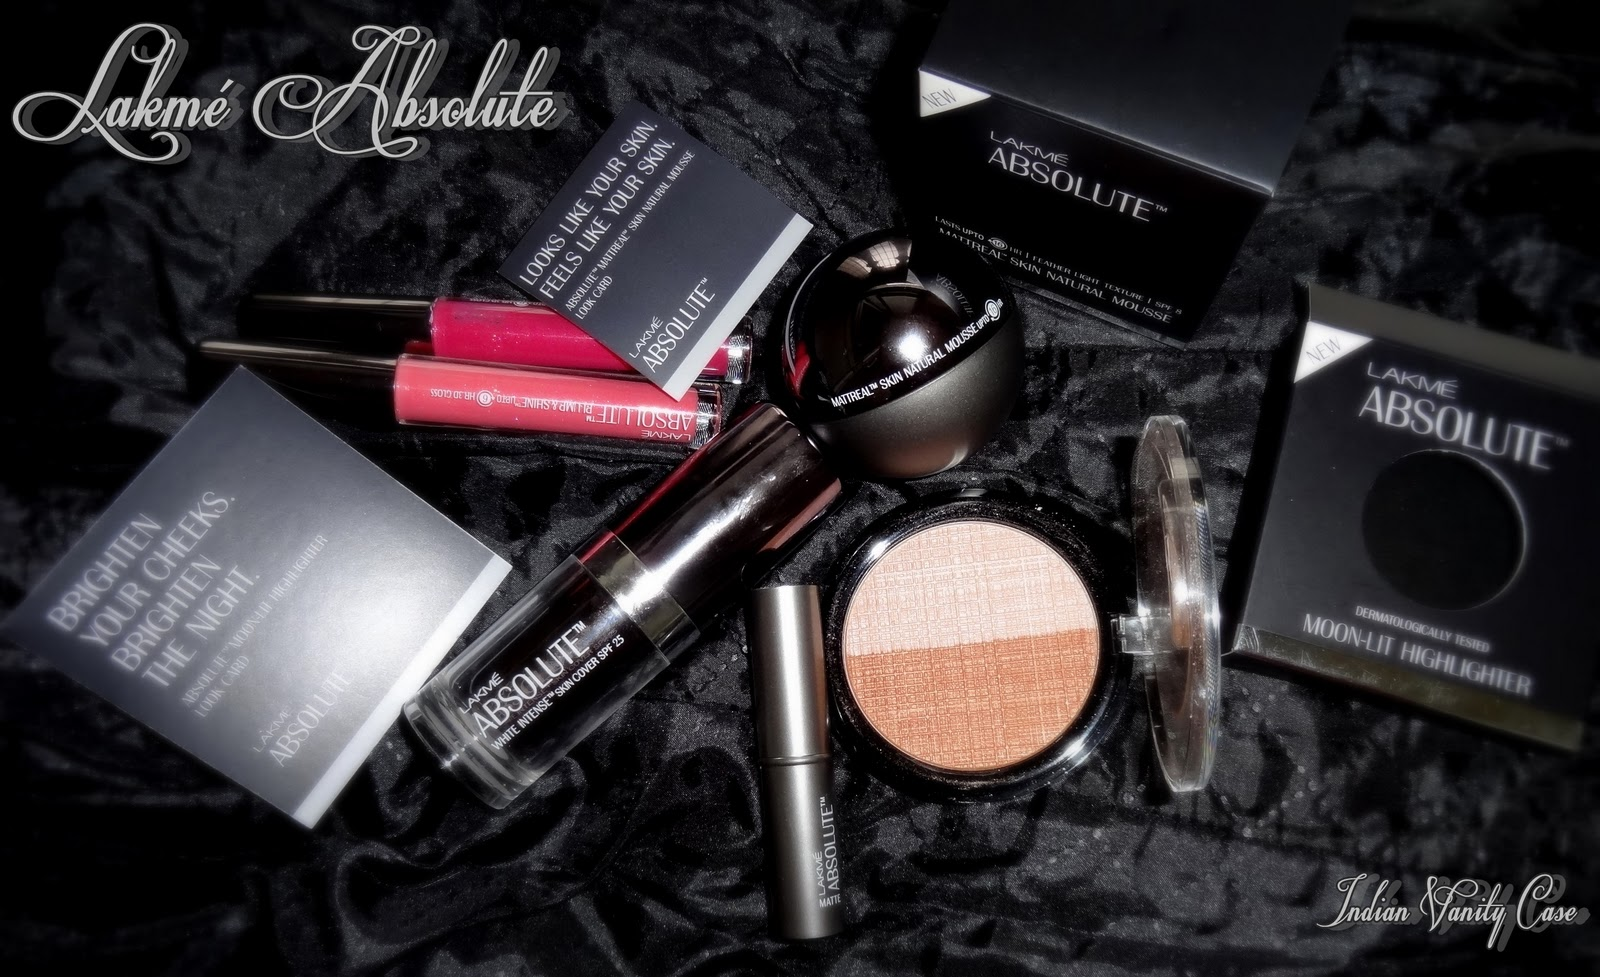 Lakme Absolute Makeup Kit In India - Mugeek Vidalondon